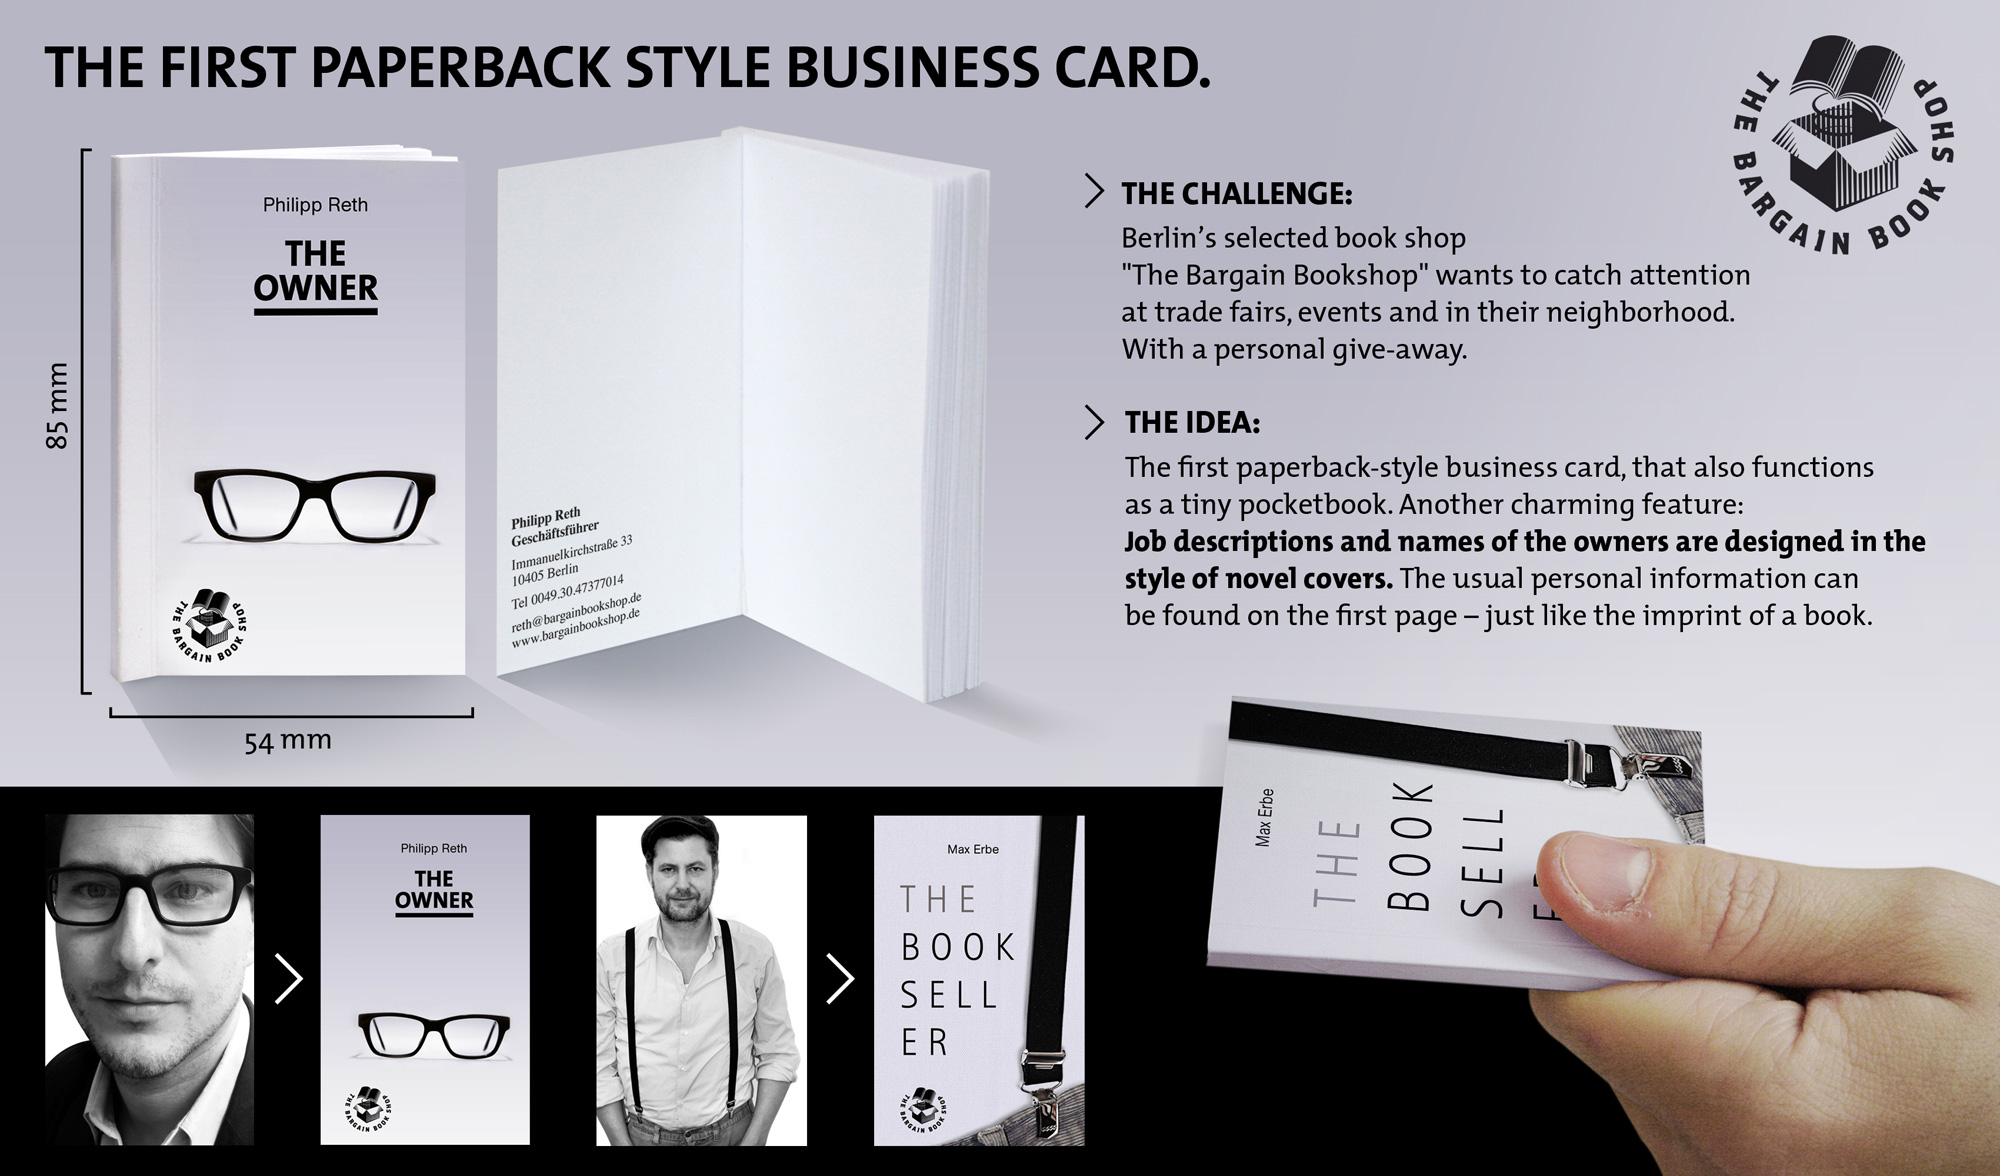 bookshop hands out business cards that look like mini paperbacks